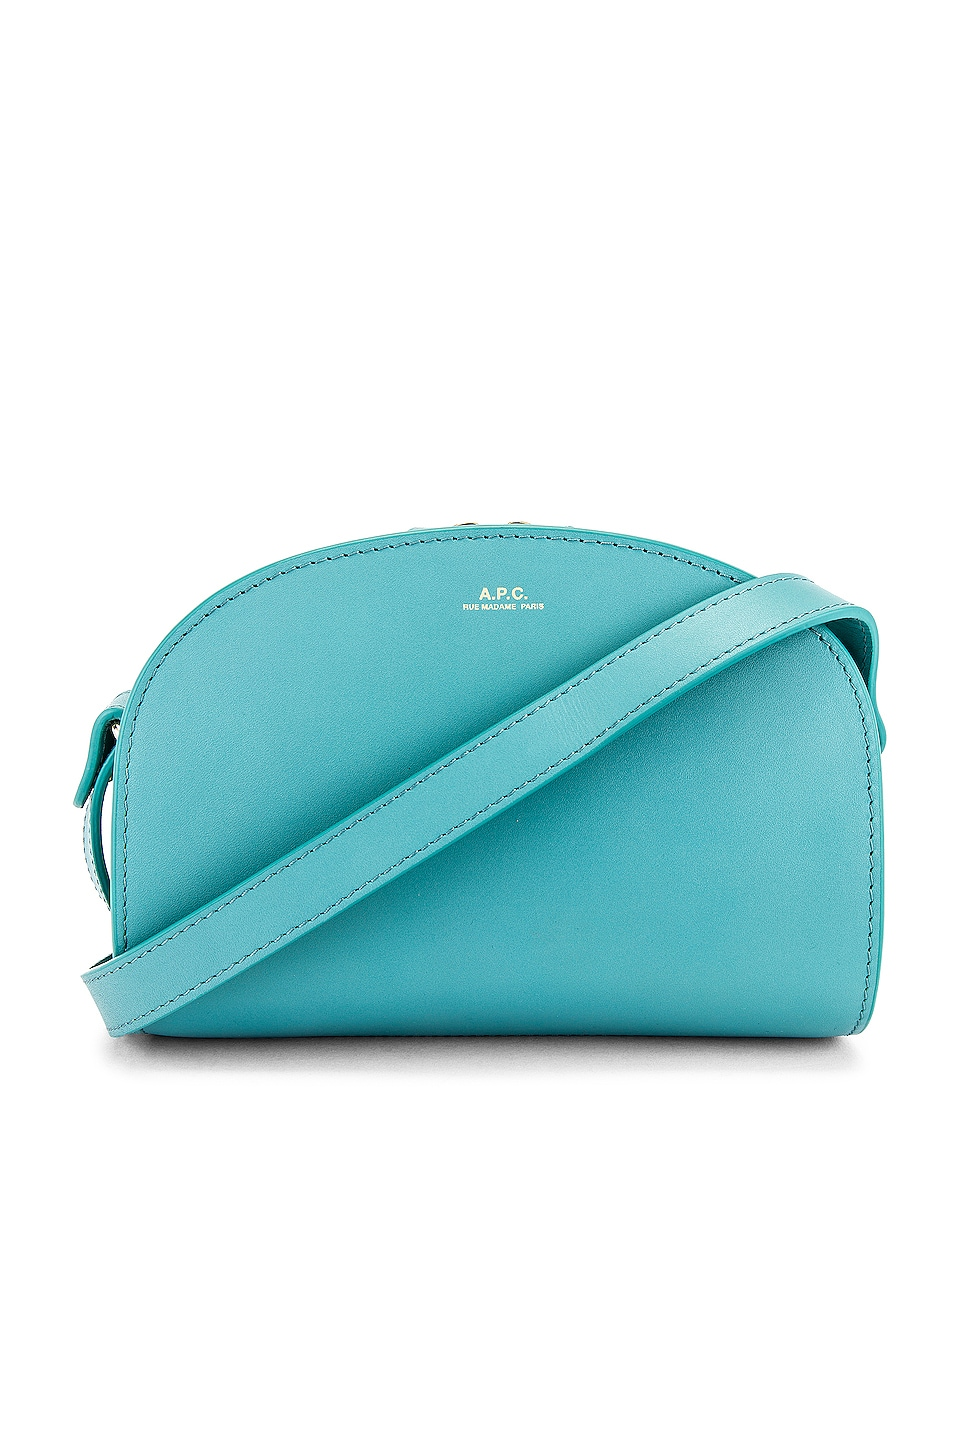 A.P.C. Sac Demi Lune Mini Crossbody Bag in Turquoise